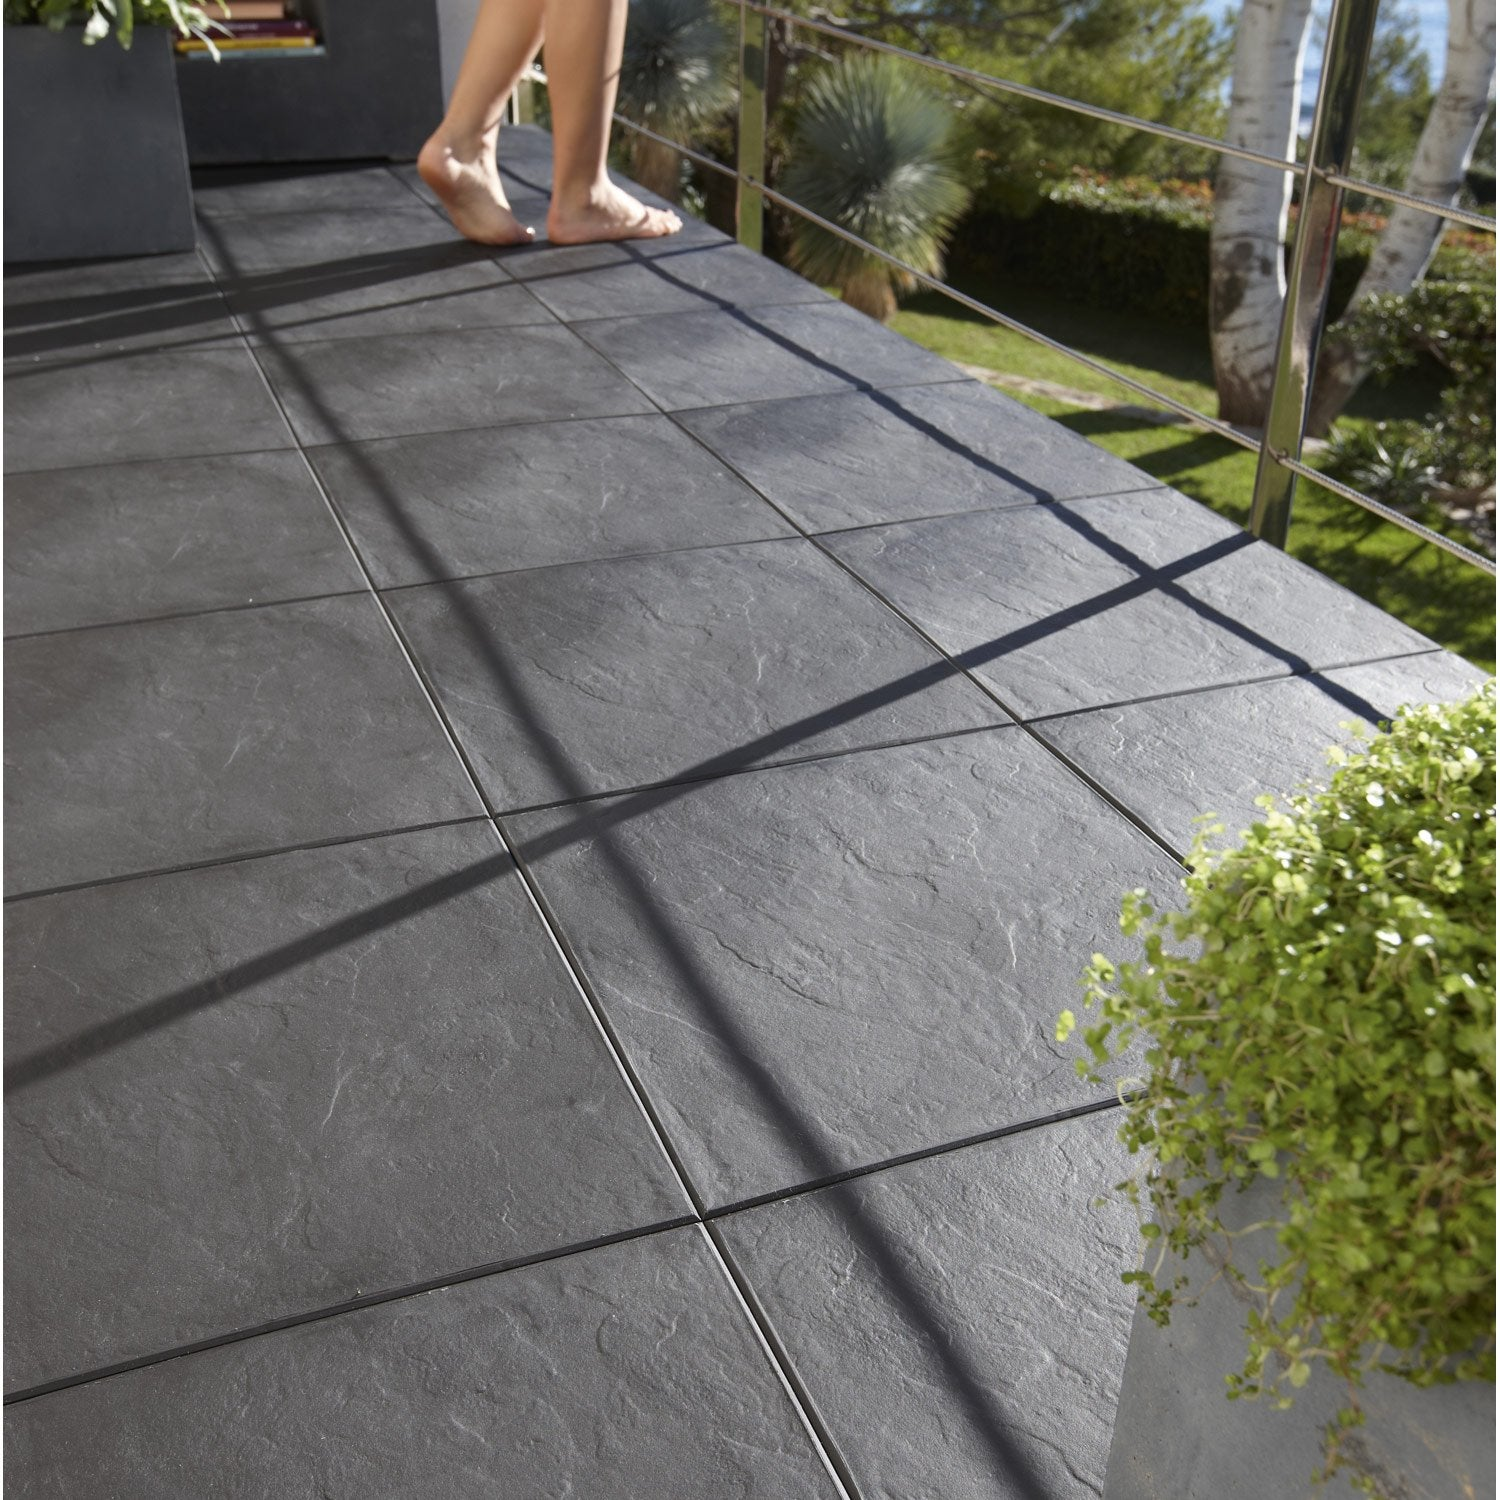 Dalle clipsable easy en polypropyl ne aspect ardoise l 30 x l 30 cm x ep 25 - Dalles terrasse clipsable ...